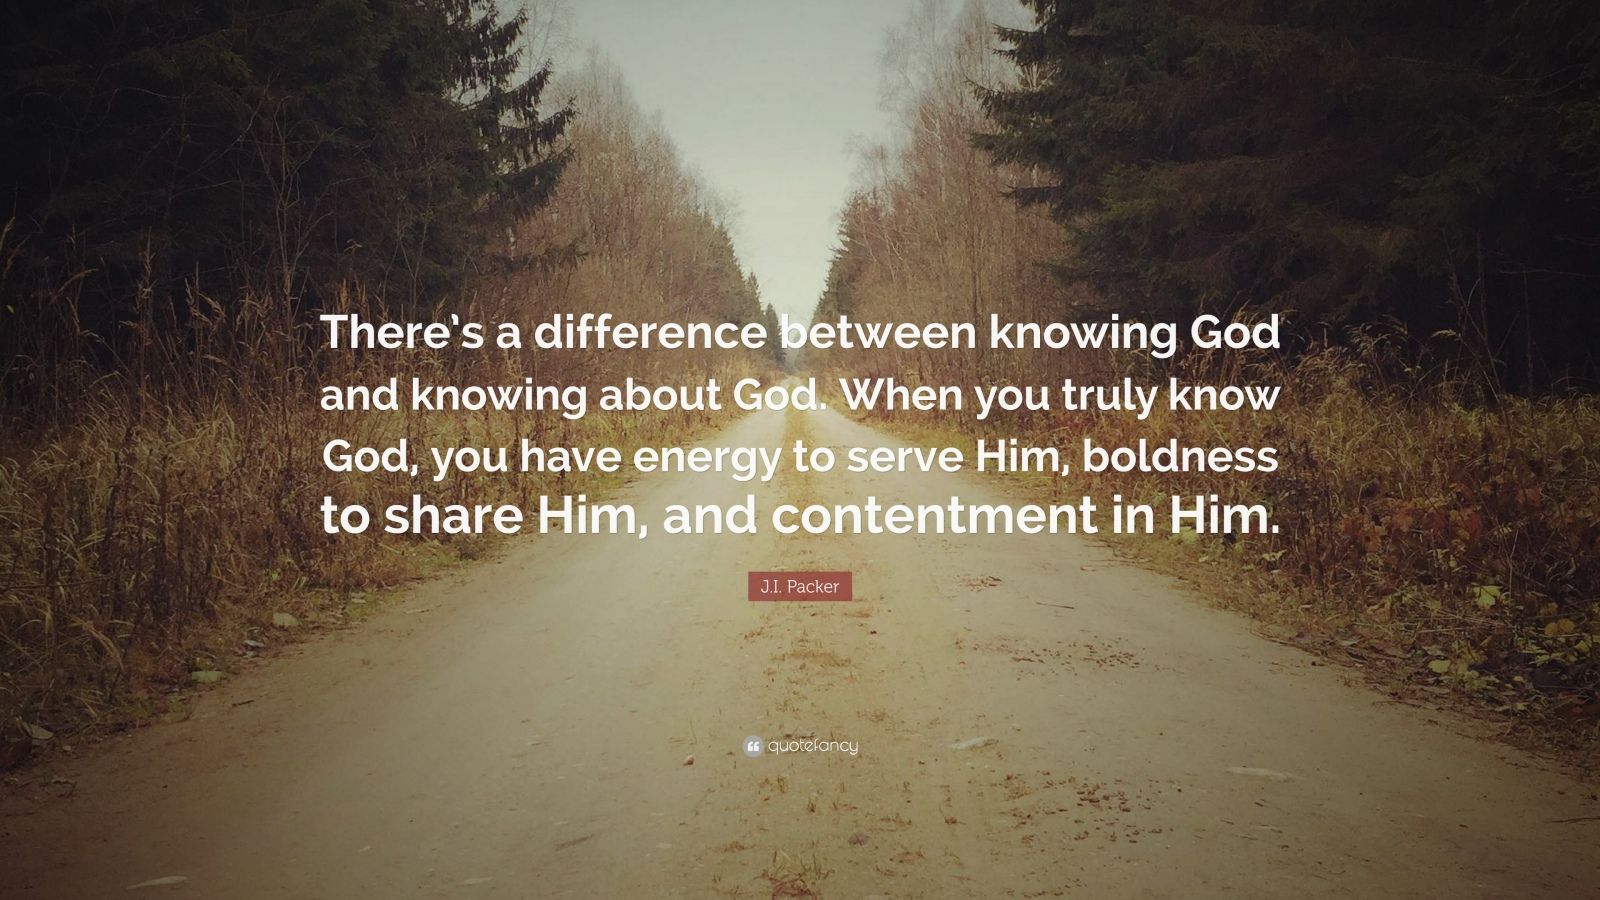 """J.I. Packer Quote: """"There's a difference between knowing God and knowing about God. When you truly know God, you have energy to serve Him, boldness to share Him, and contentment in Him."""""""